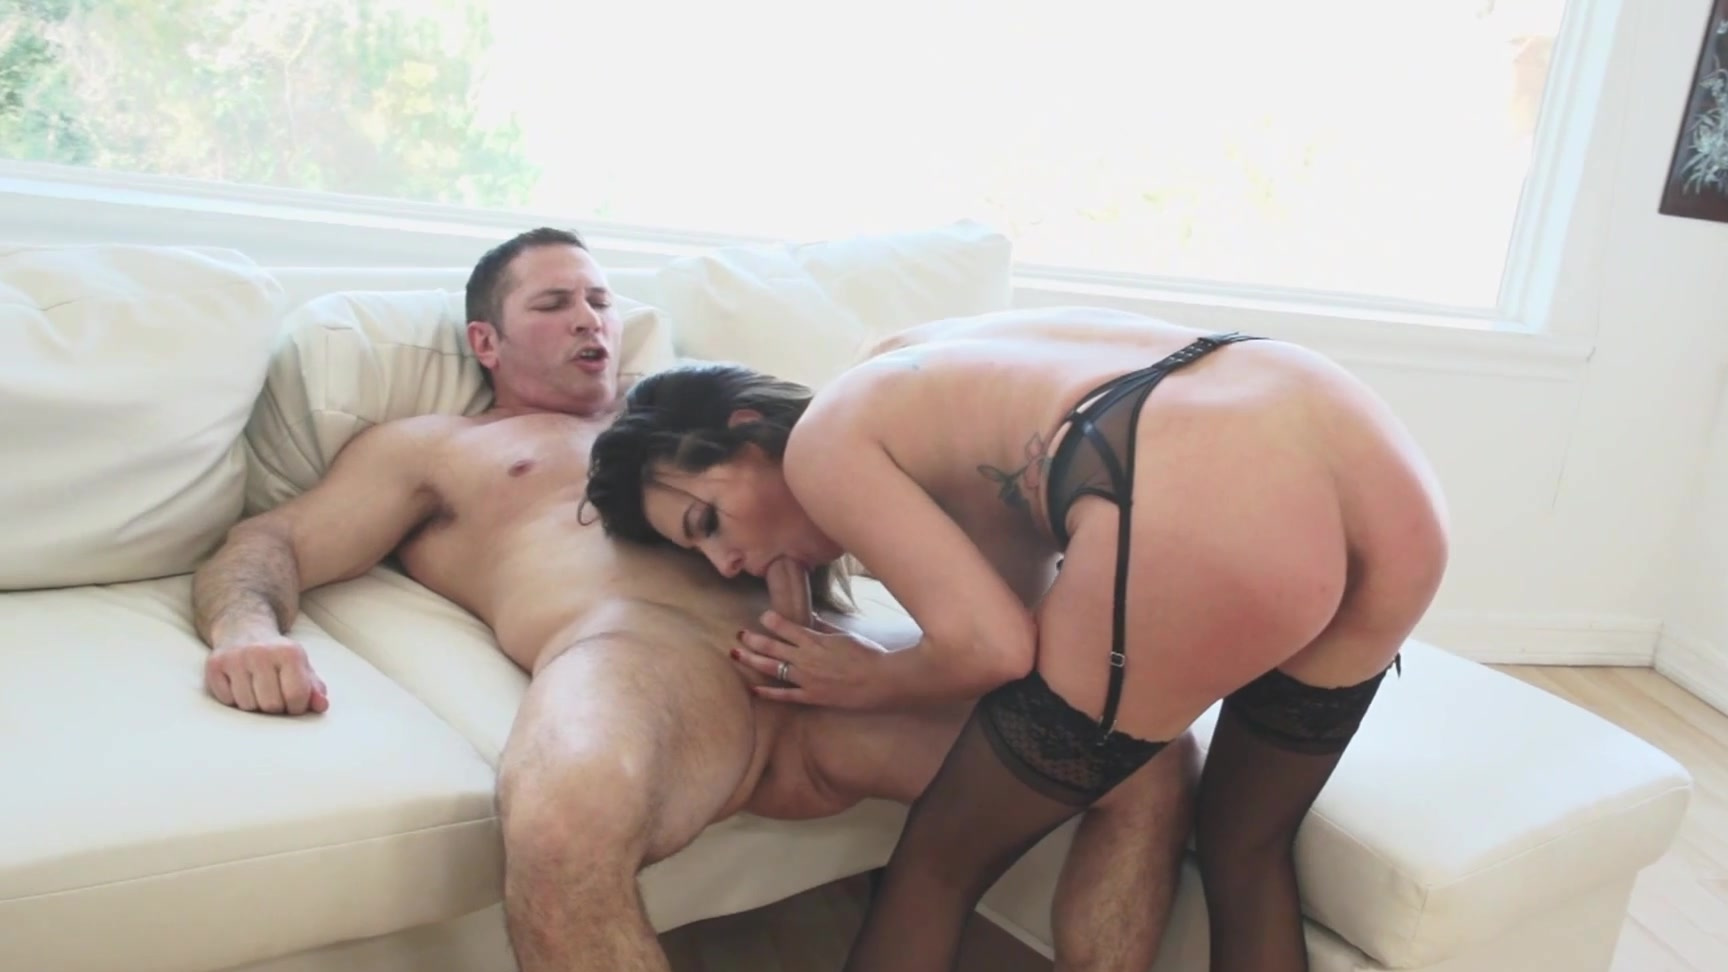 Adult Pictures Trib sex fight threesome catfight